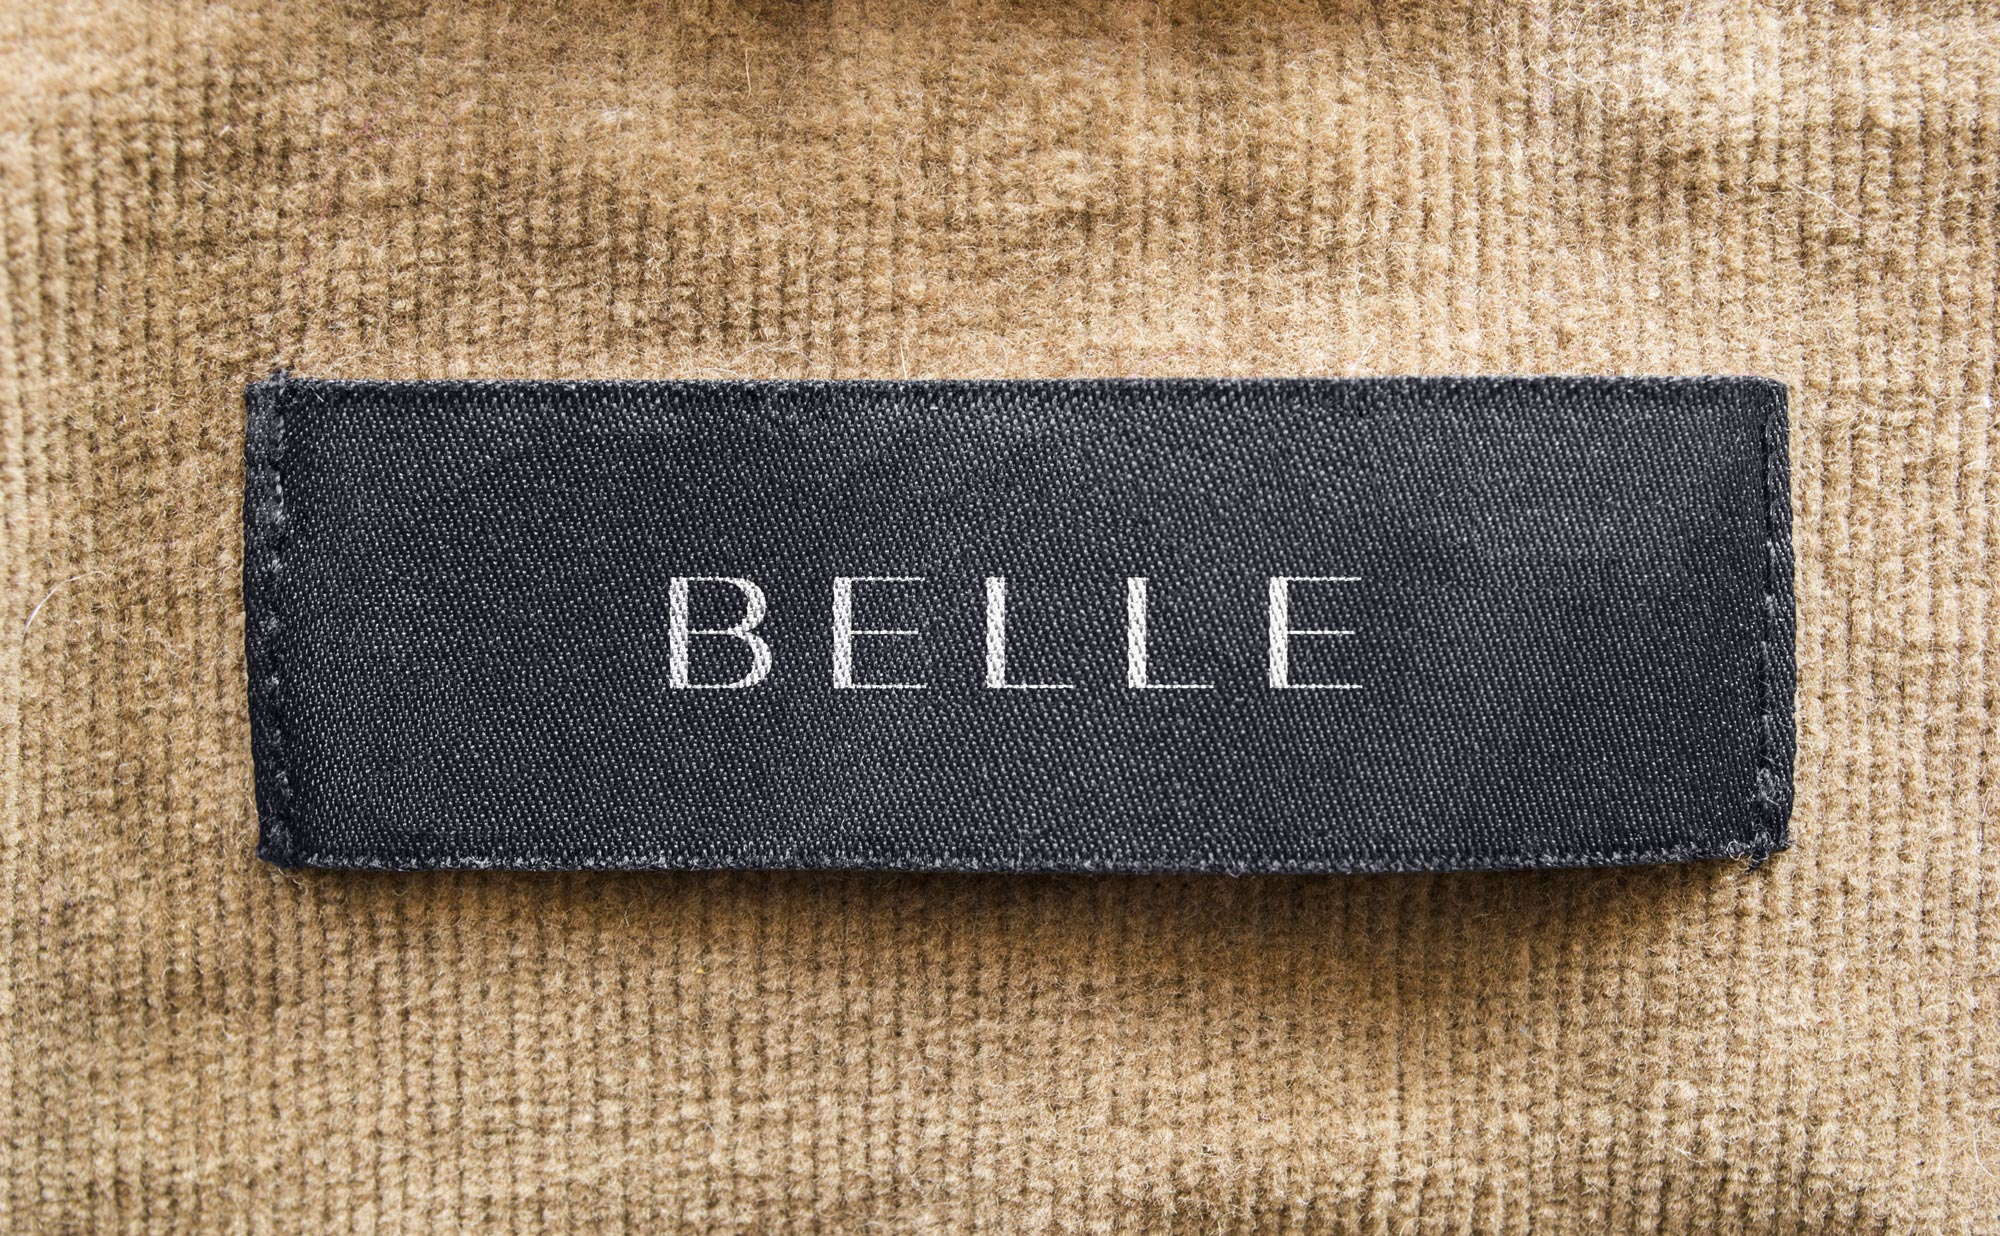 Belle Clothing Label